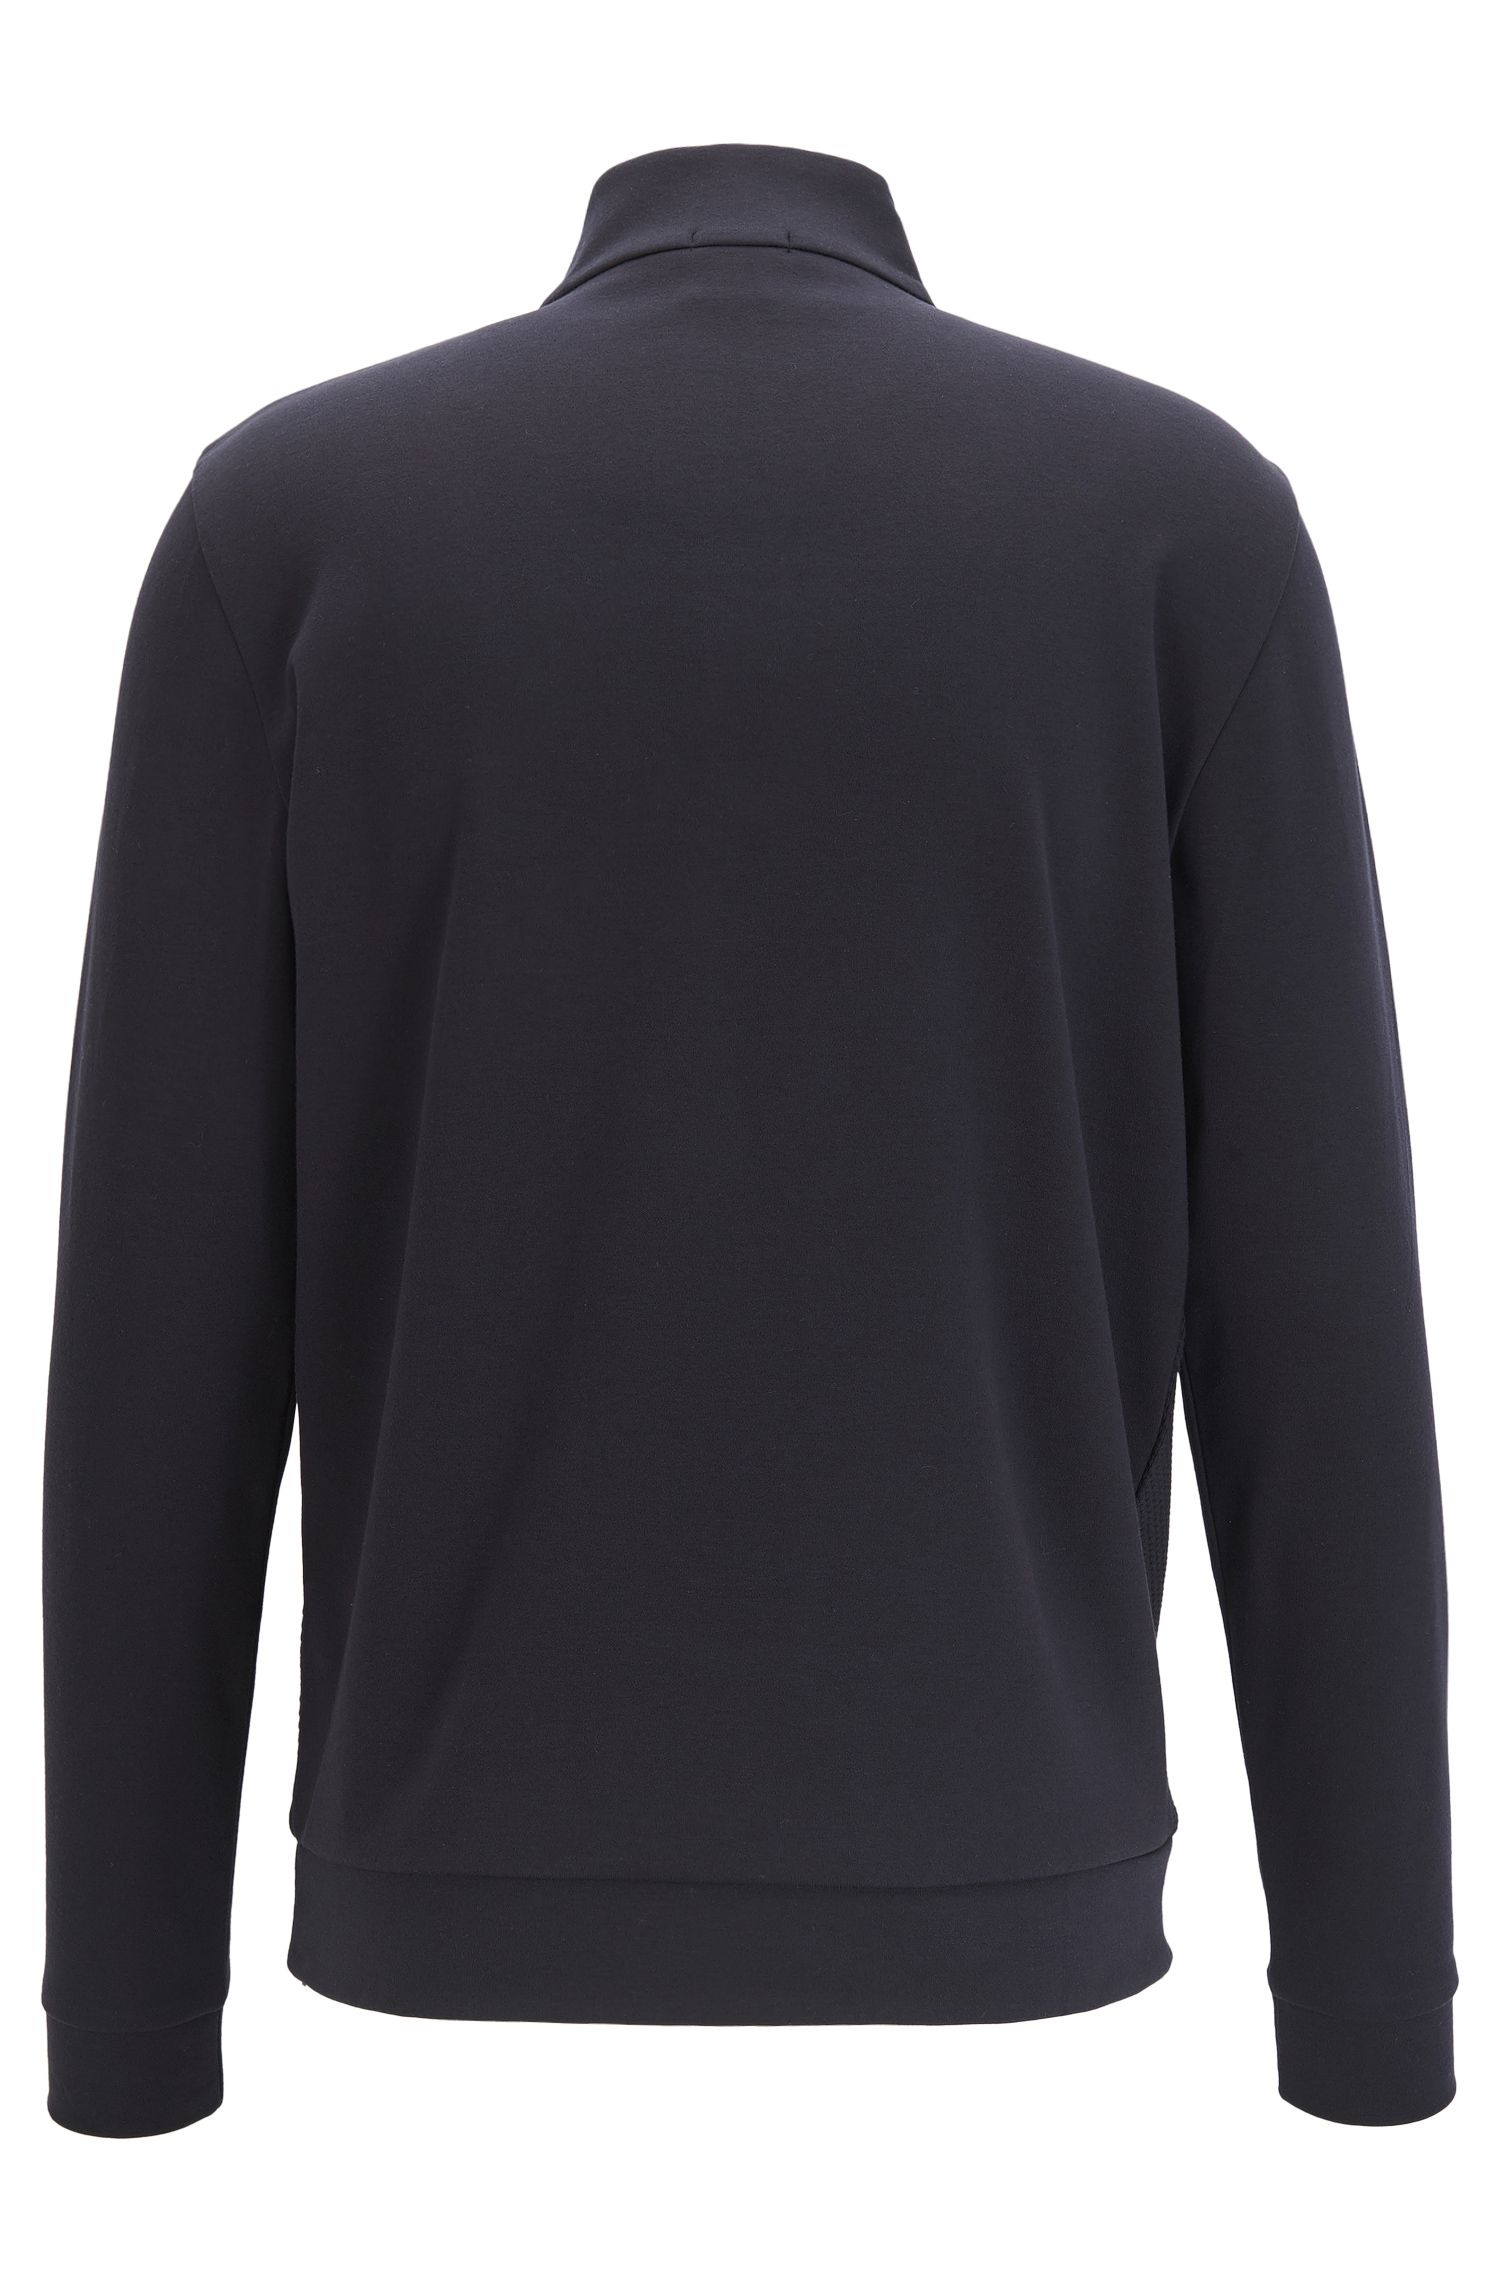 Cotton Birdseye Half-Zip Sweatshirt | Sidney, Dark Blue